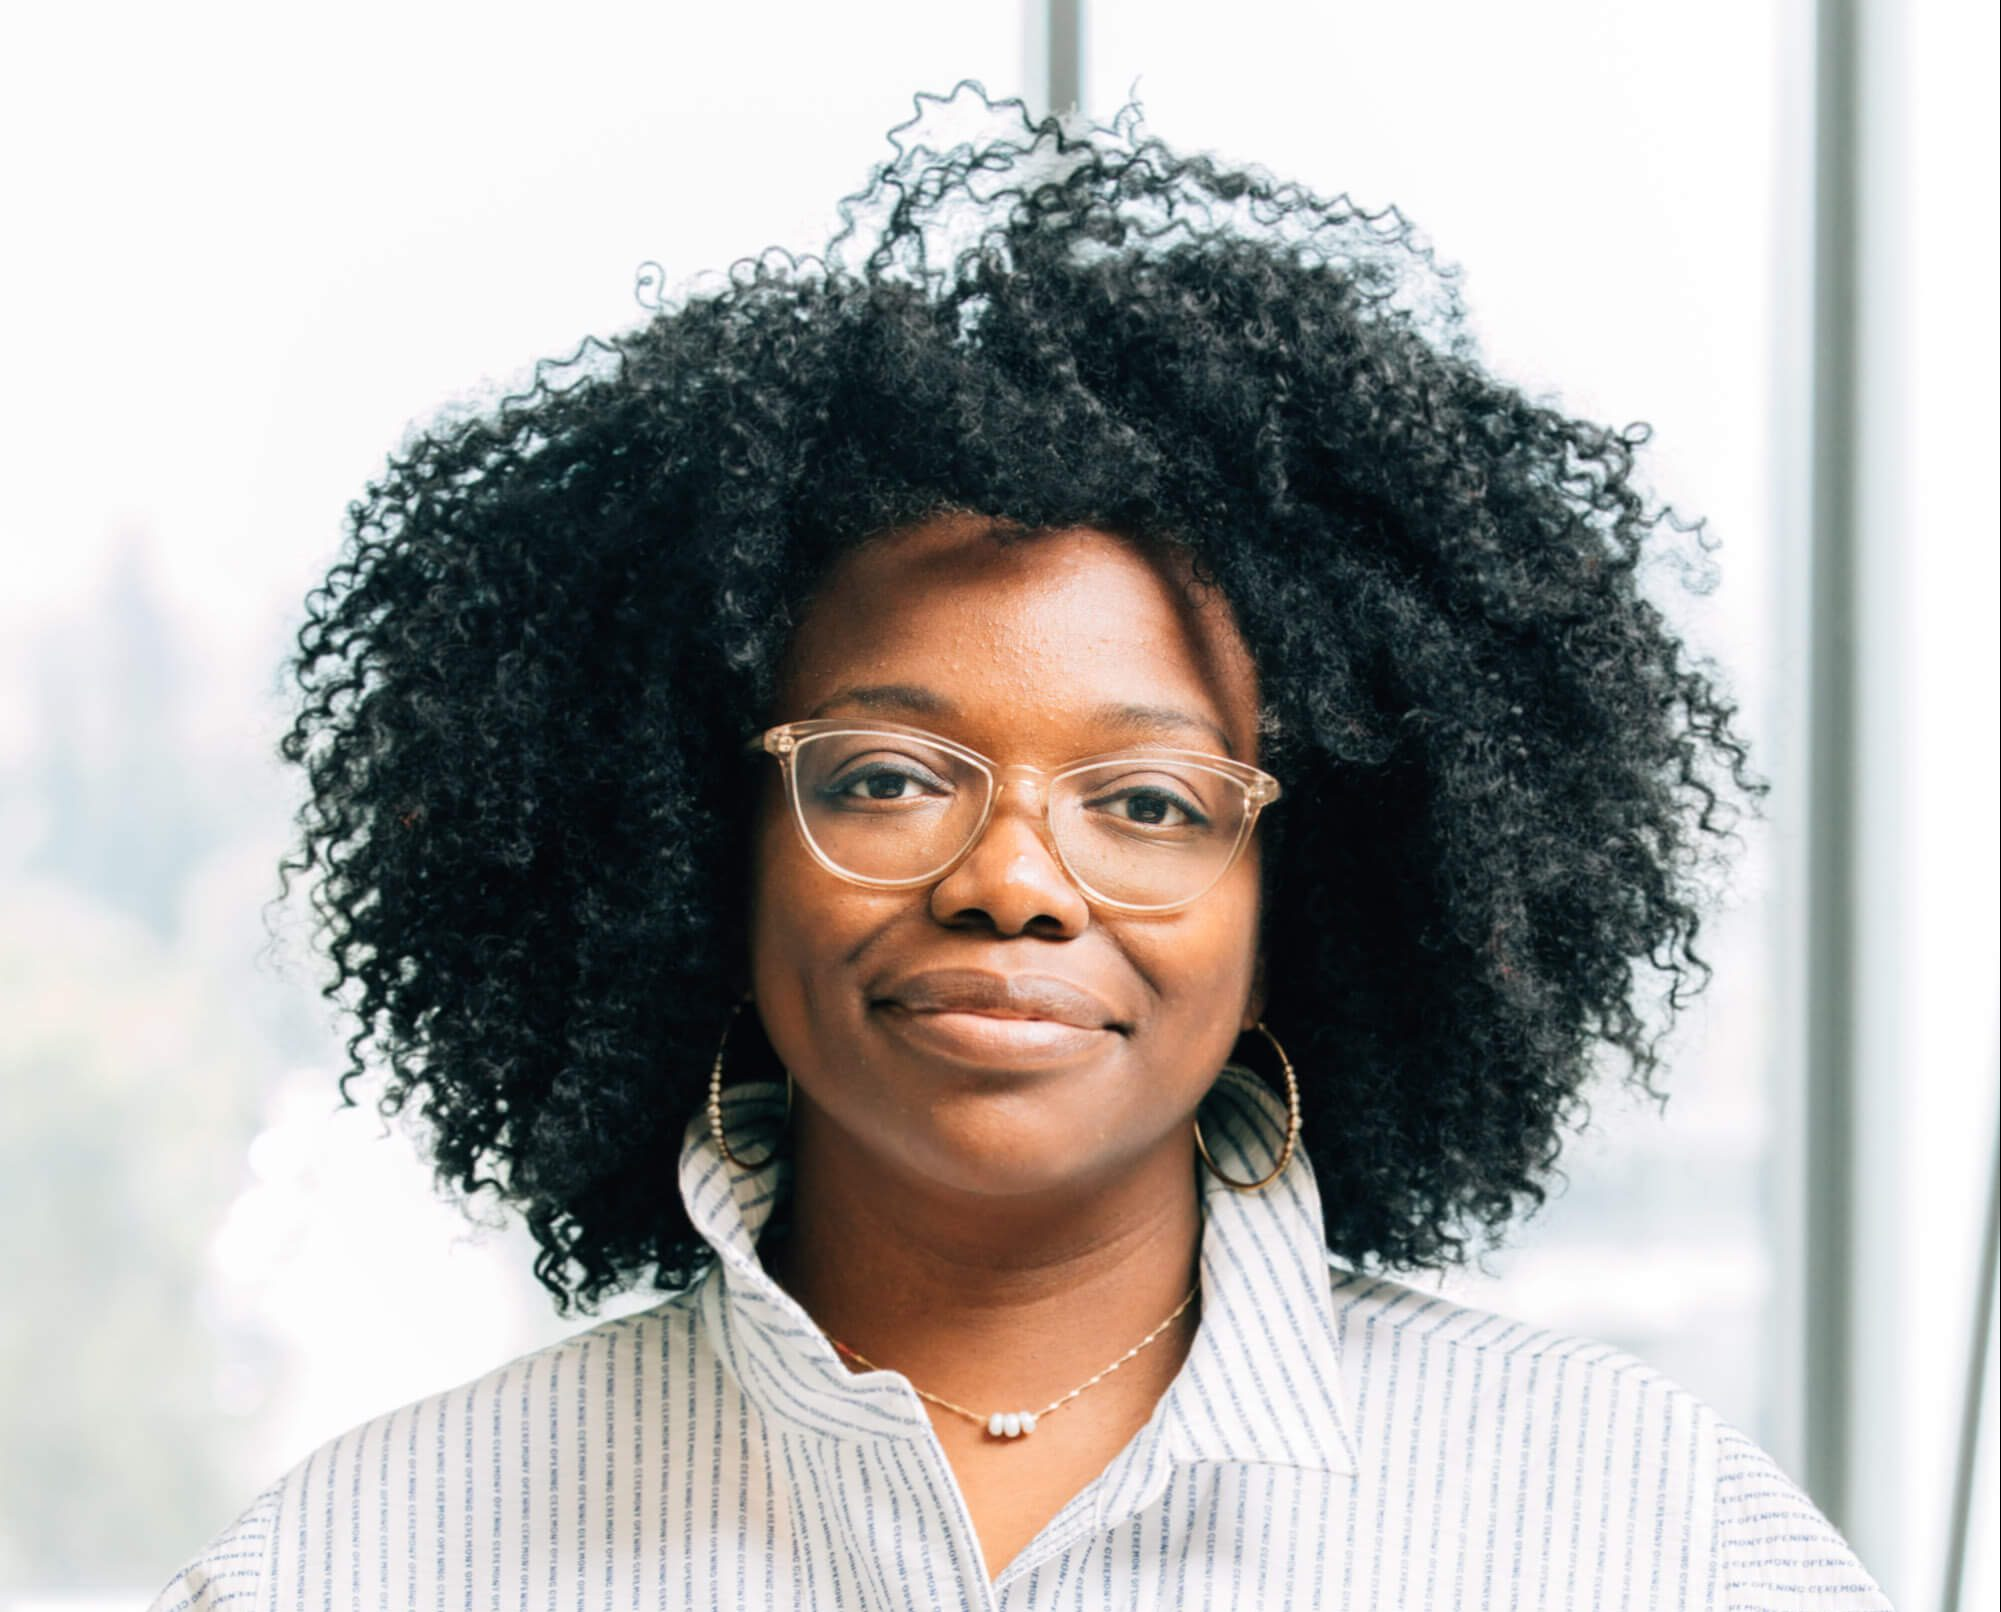 A portrait of Osi Imeokparia, Vice President, Product and Head of Justice & Opportunity Technology at the Chan Zuckerberg Initiative